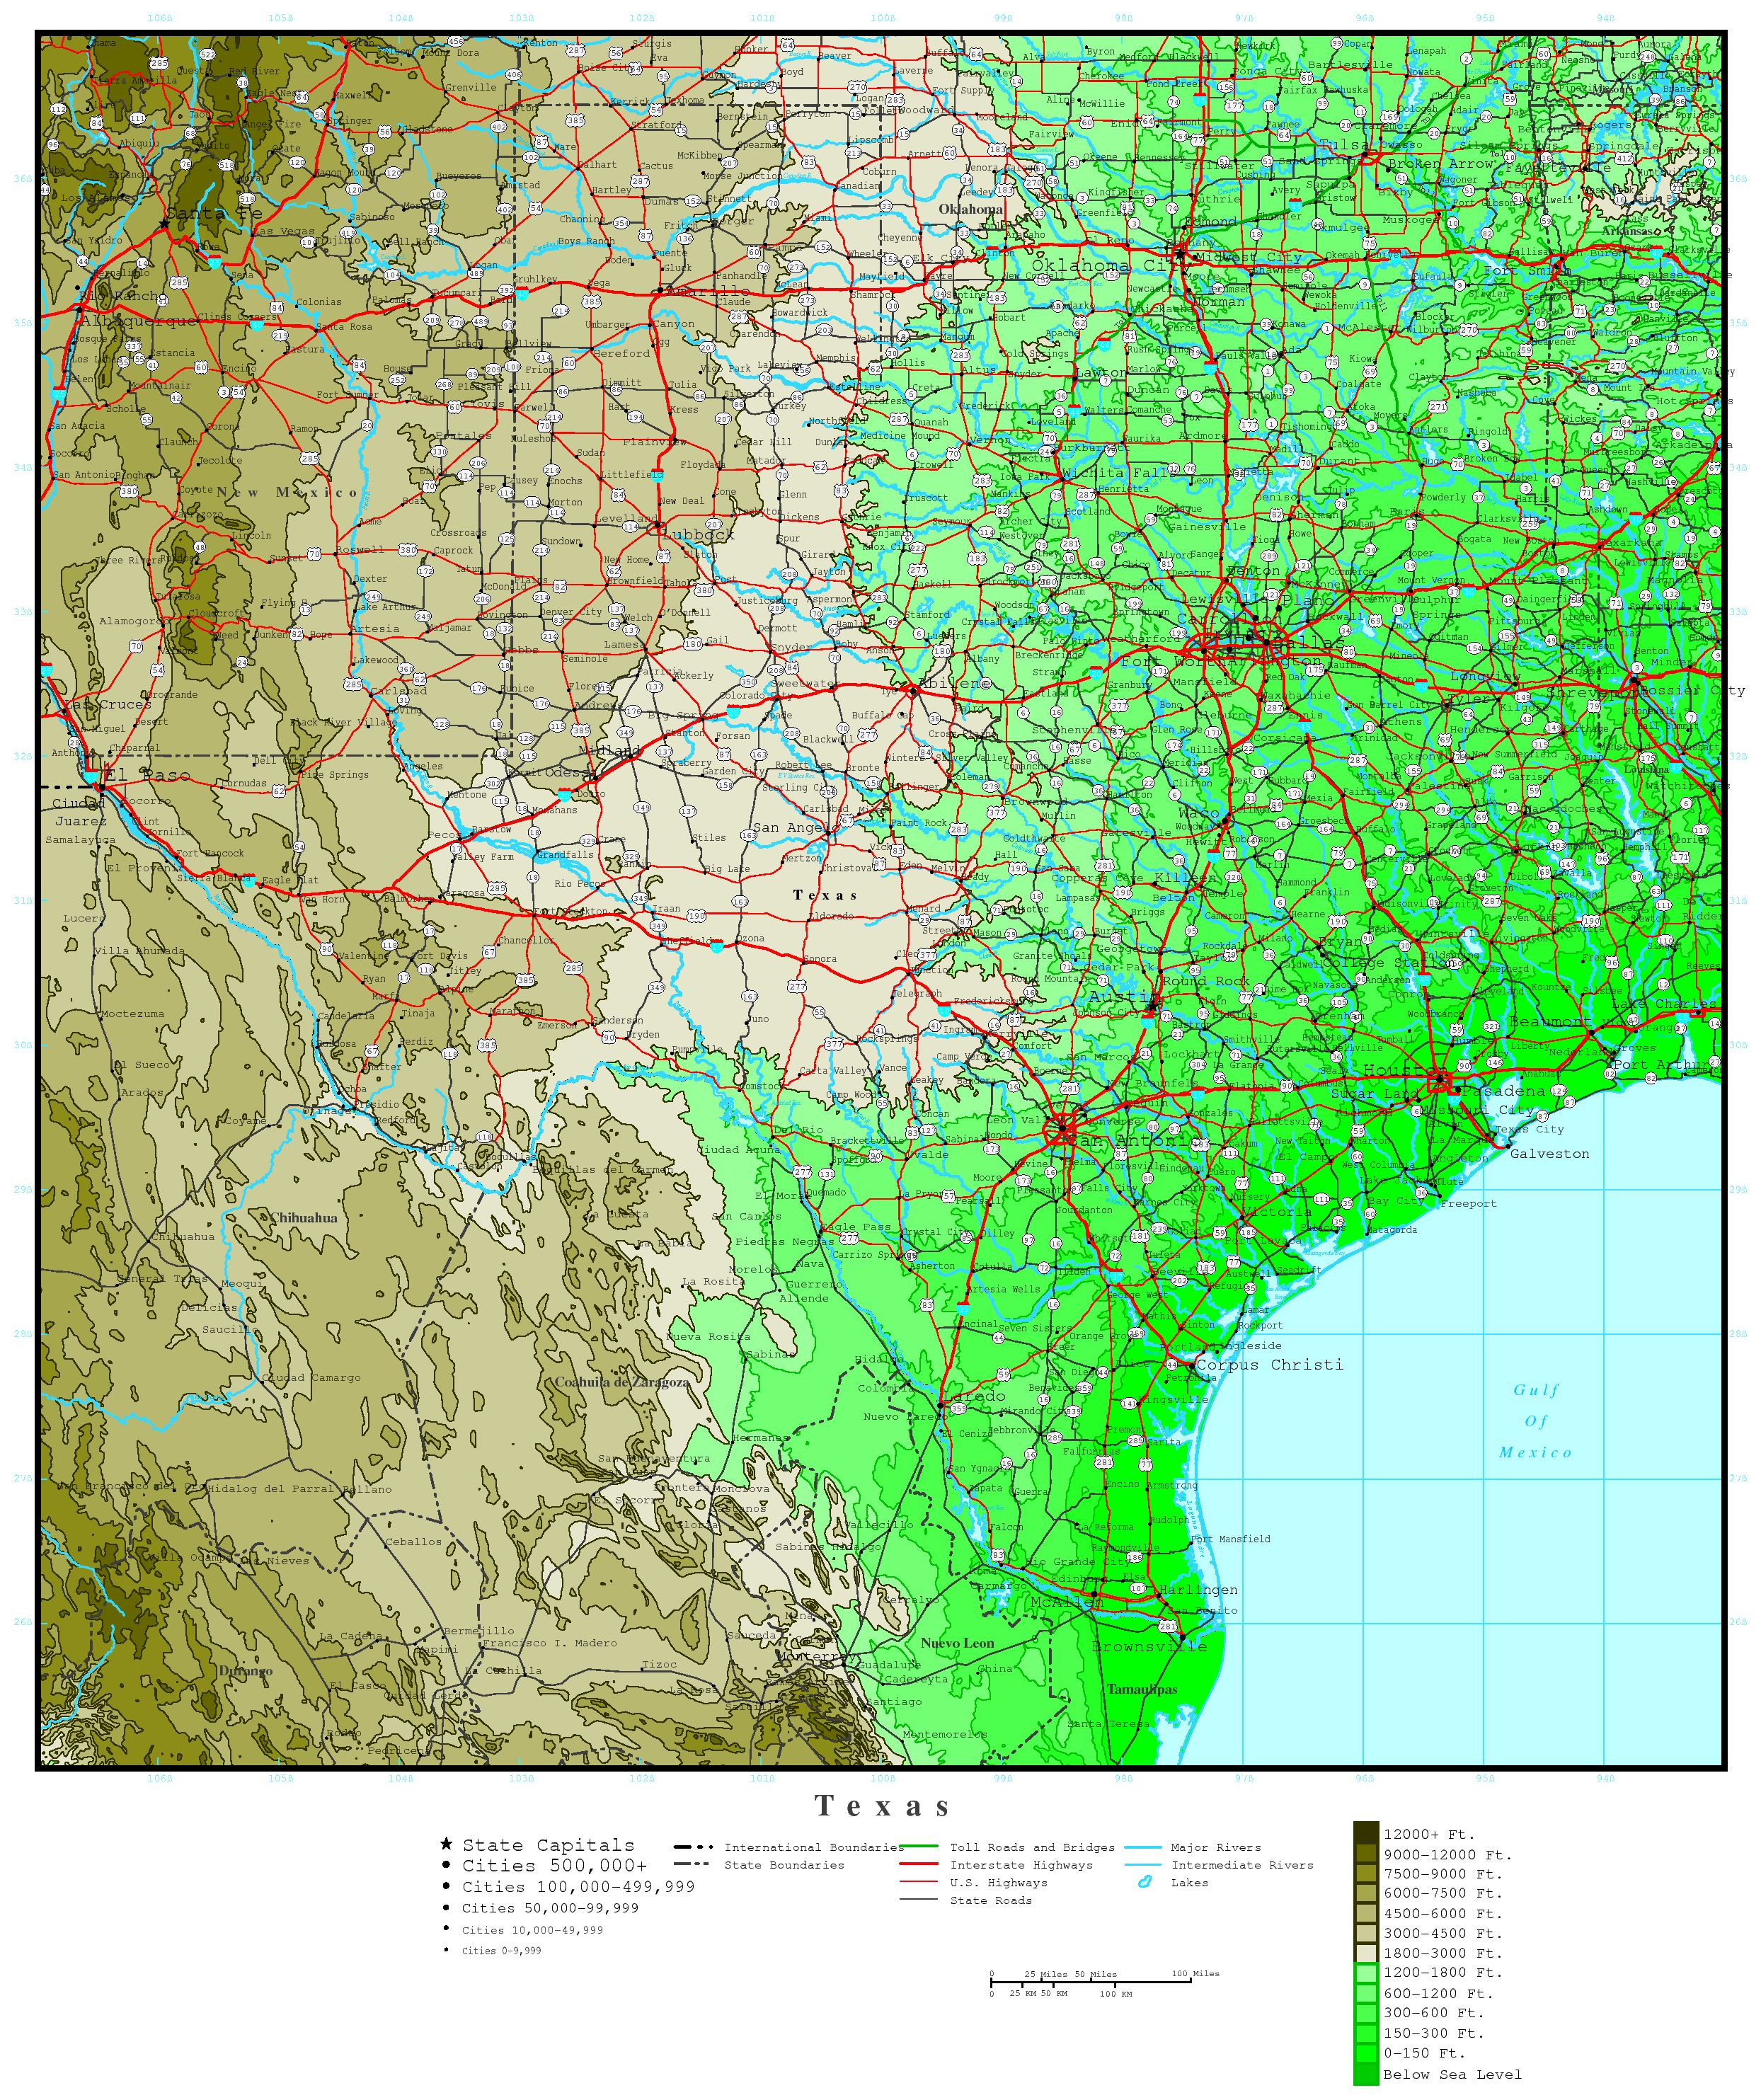 Texas Elevation Map